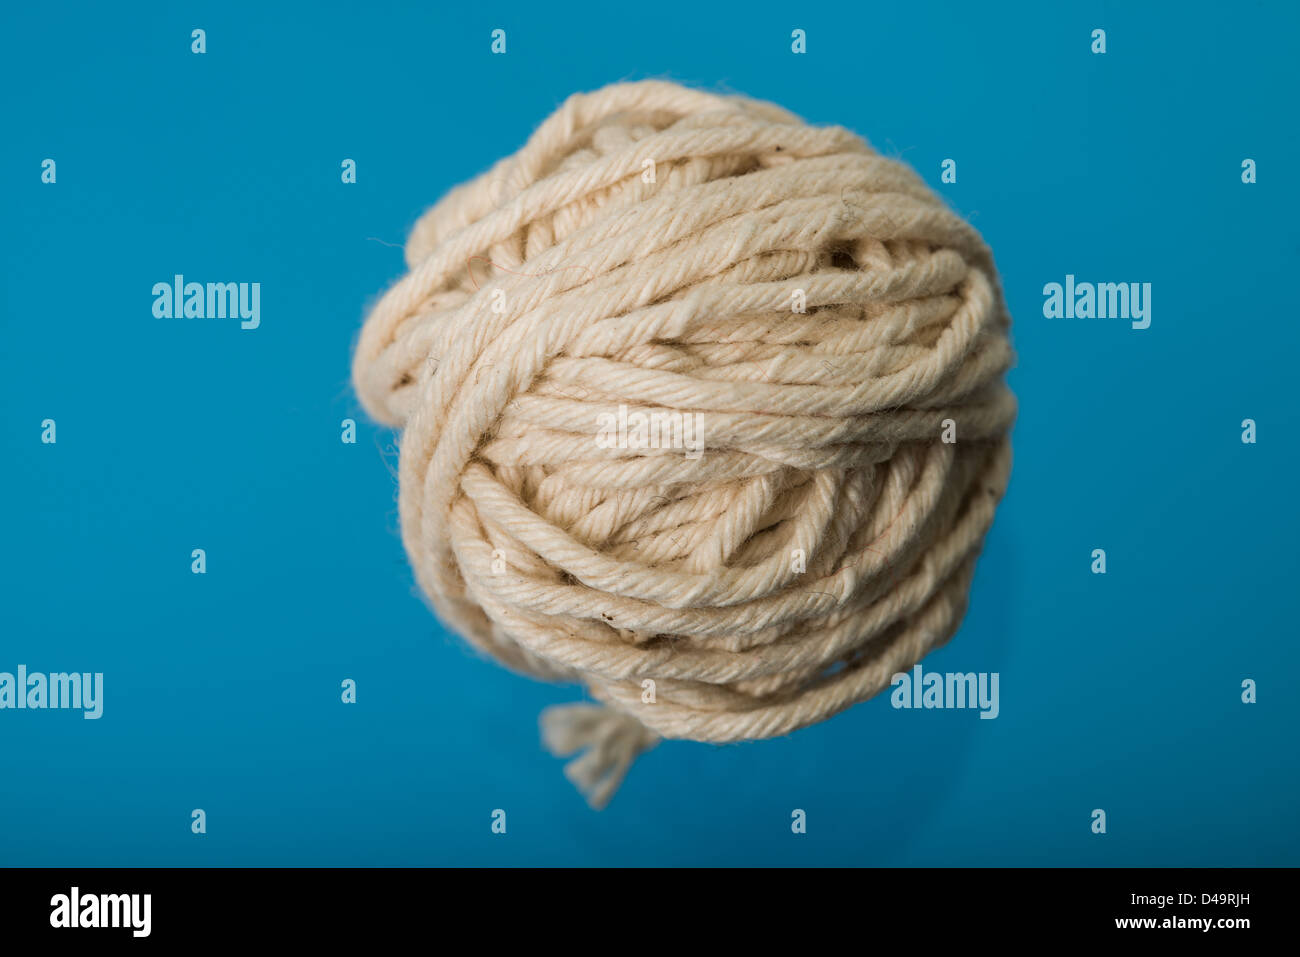 This is an image of a small ball of string - Stock Image